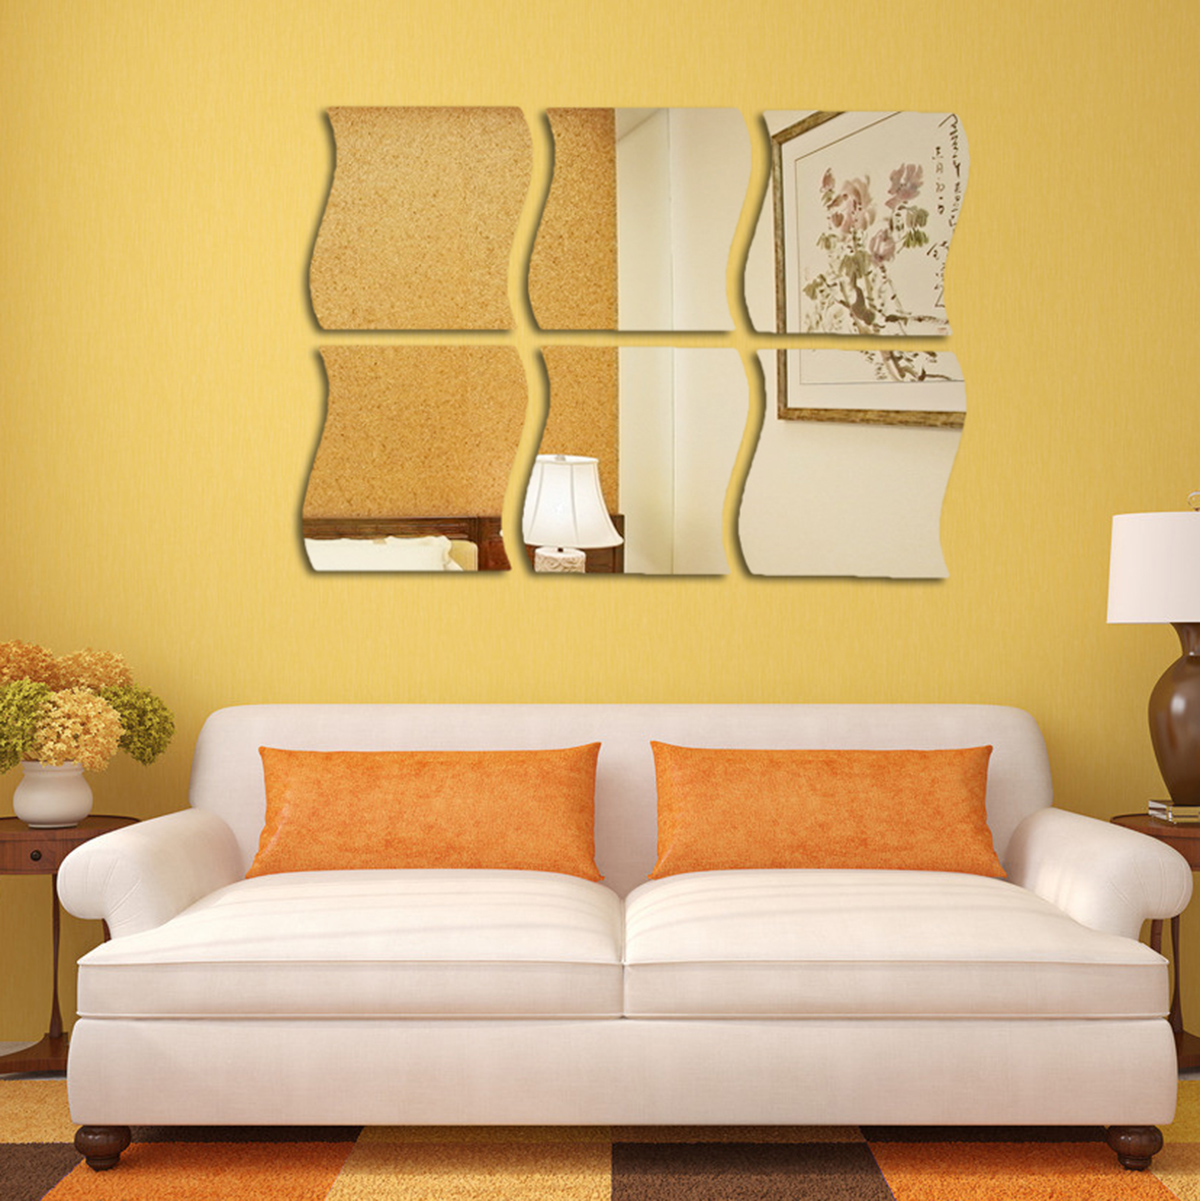 18 PCS 3D Acrylic Modern Mirror Wall Stickers Vinyl Removable Home ...